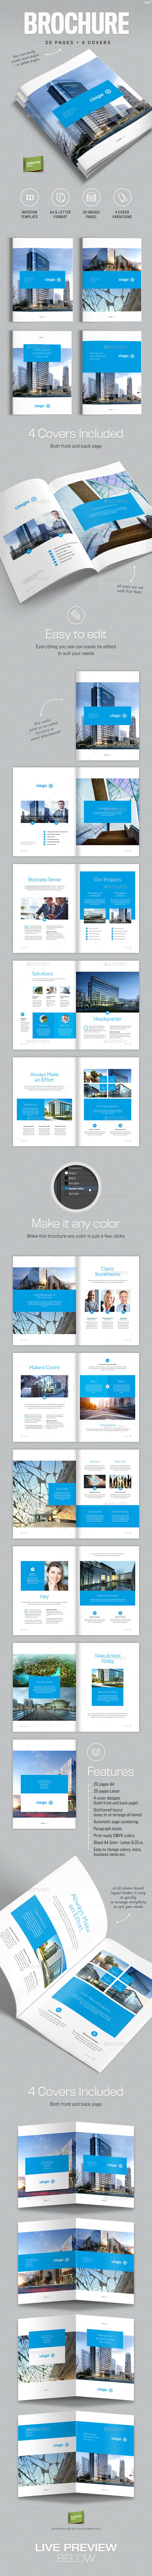 Brochure Template for Indesign - Cingo - Corporate Brochures